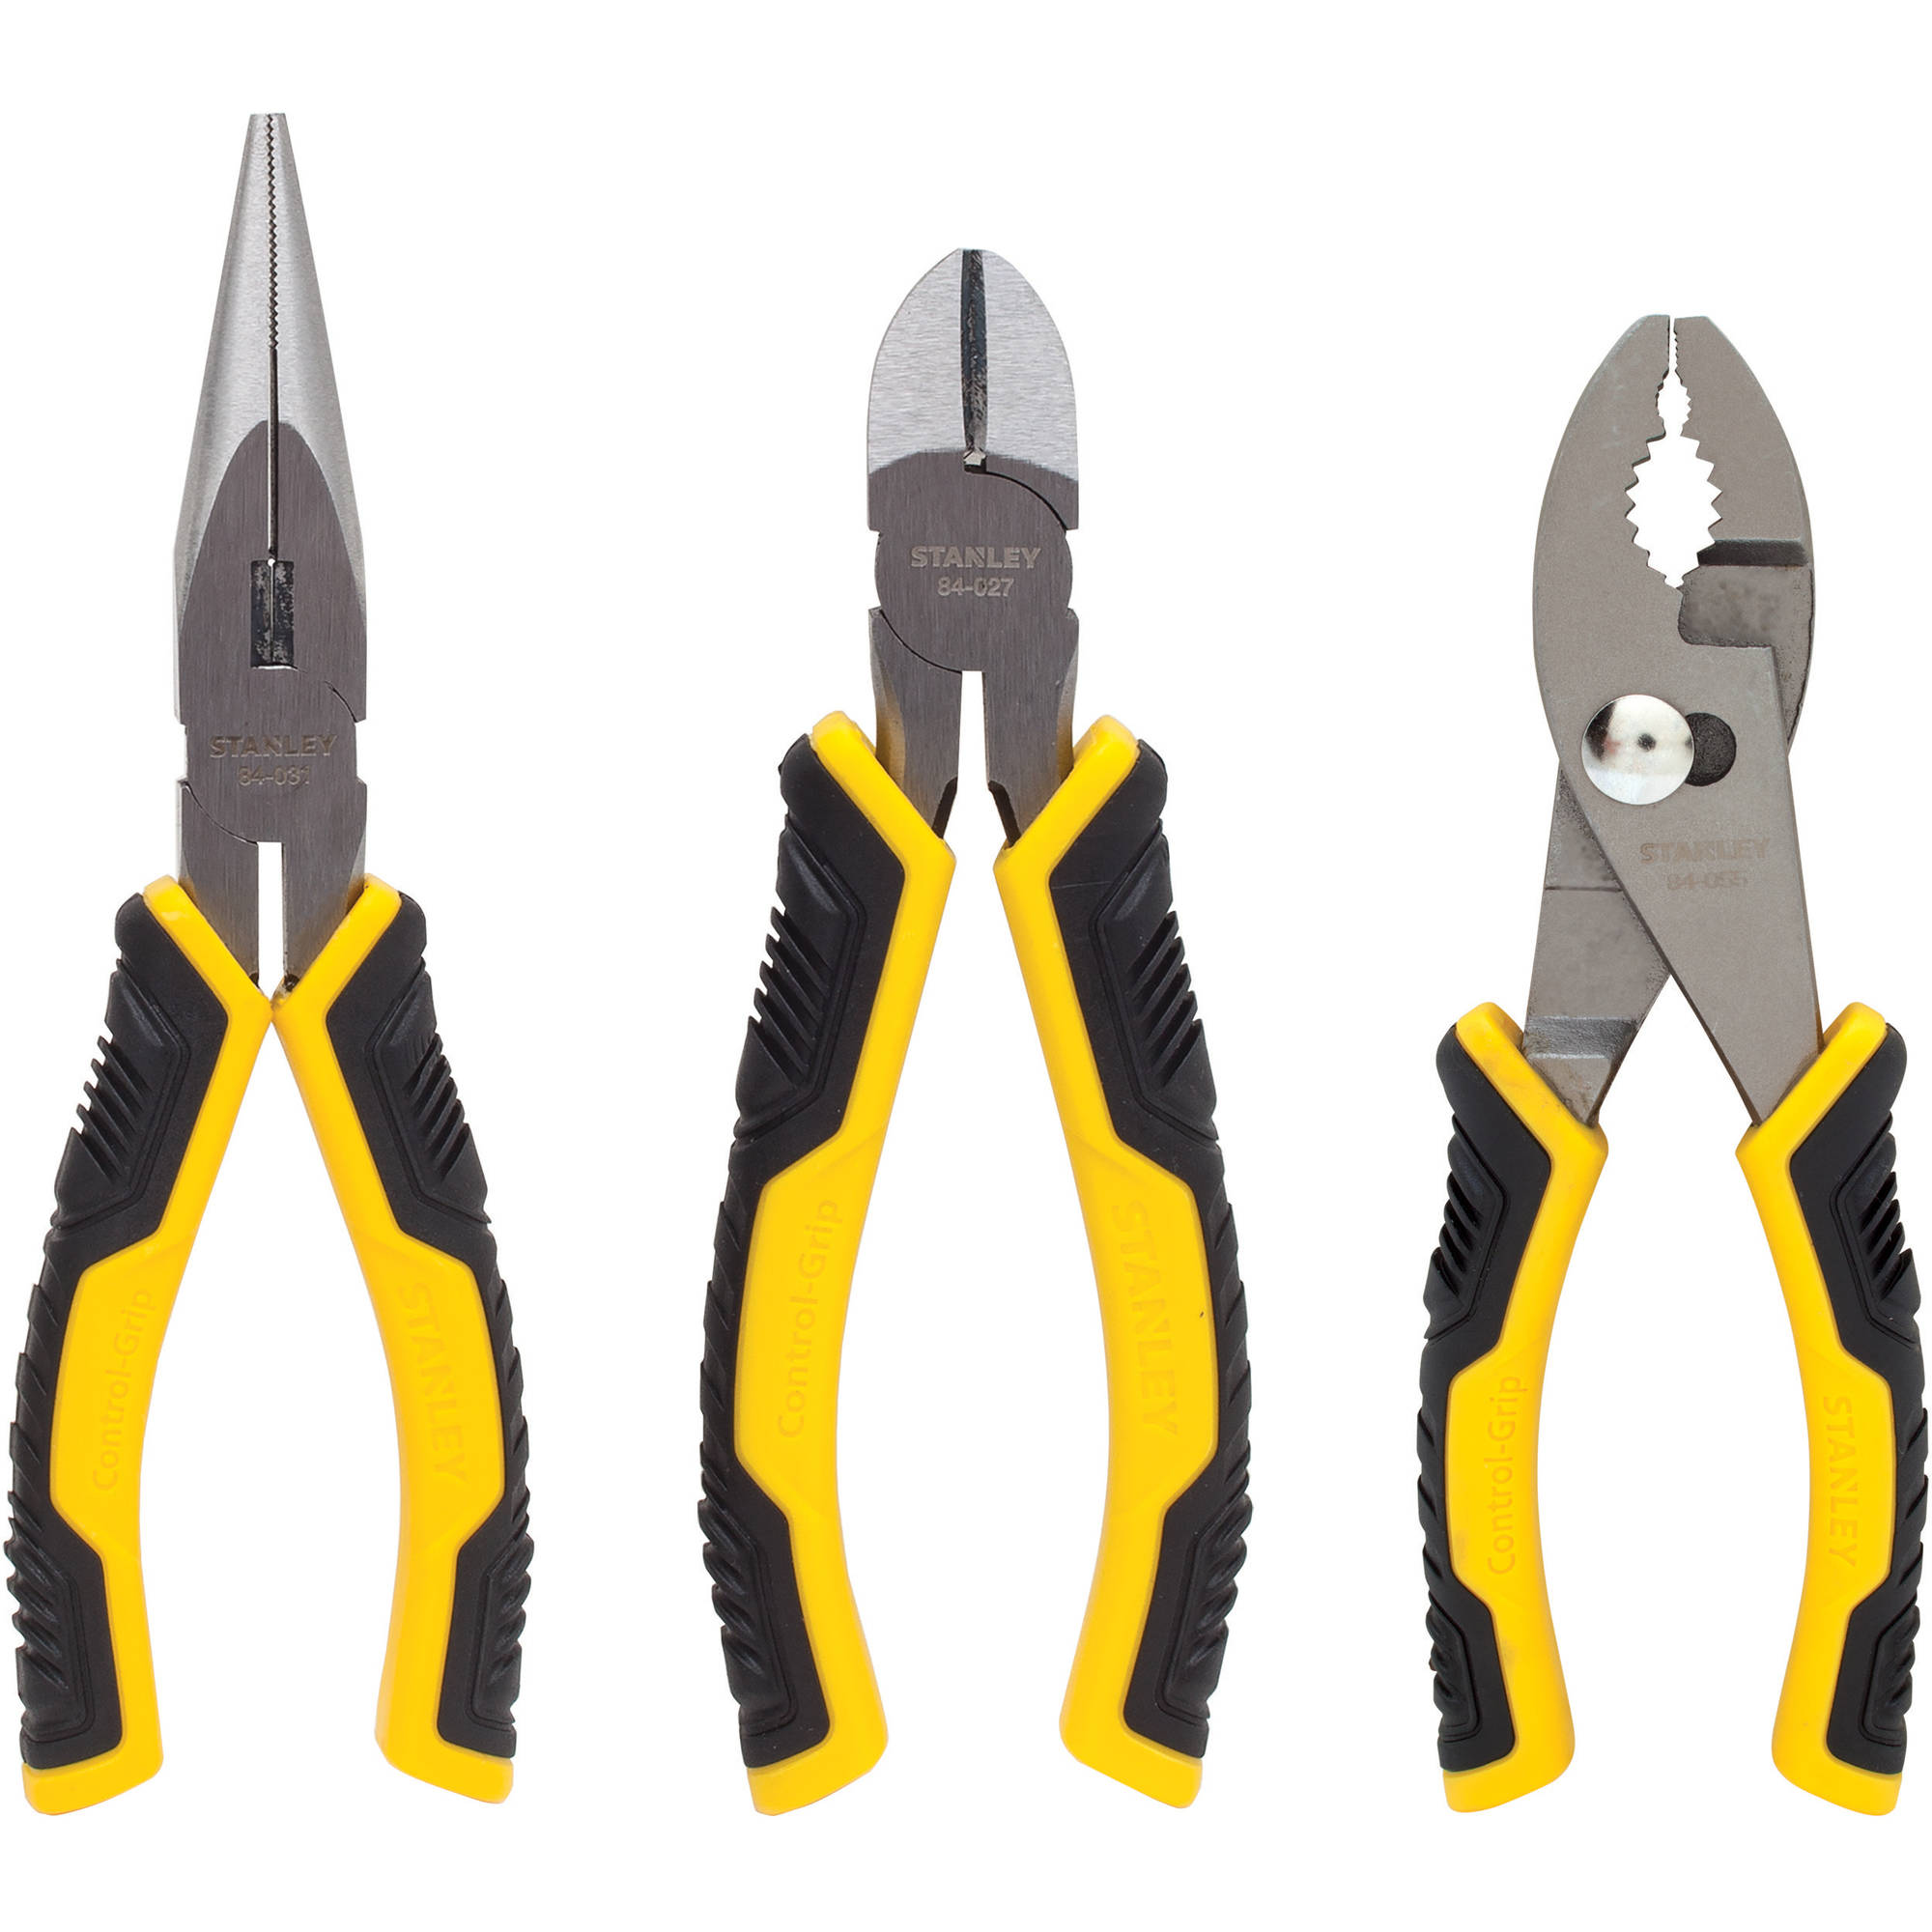 Stanley 3-Piece Plier Set, 84-056